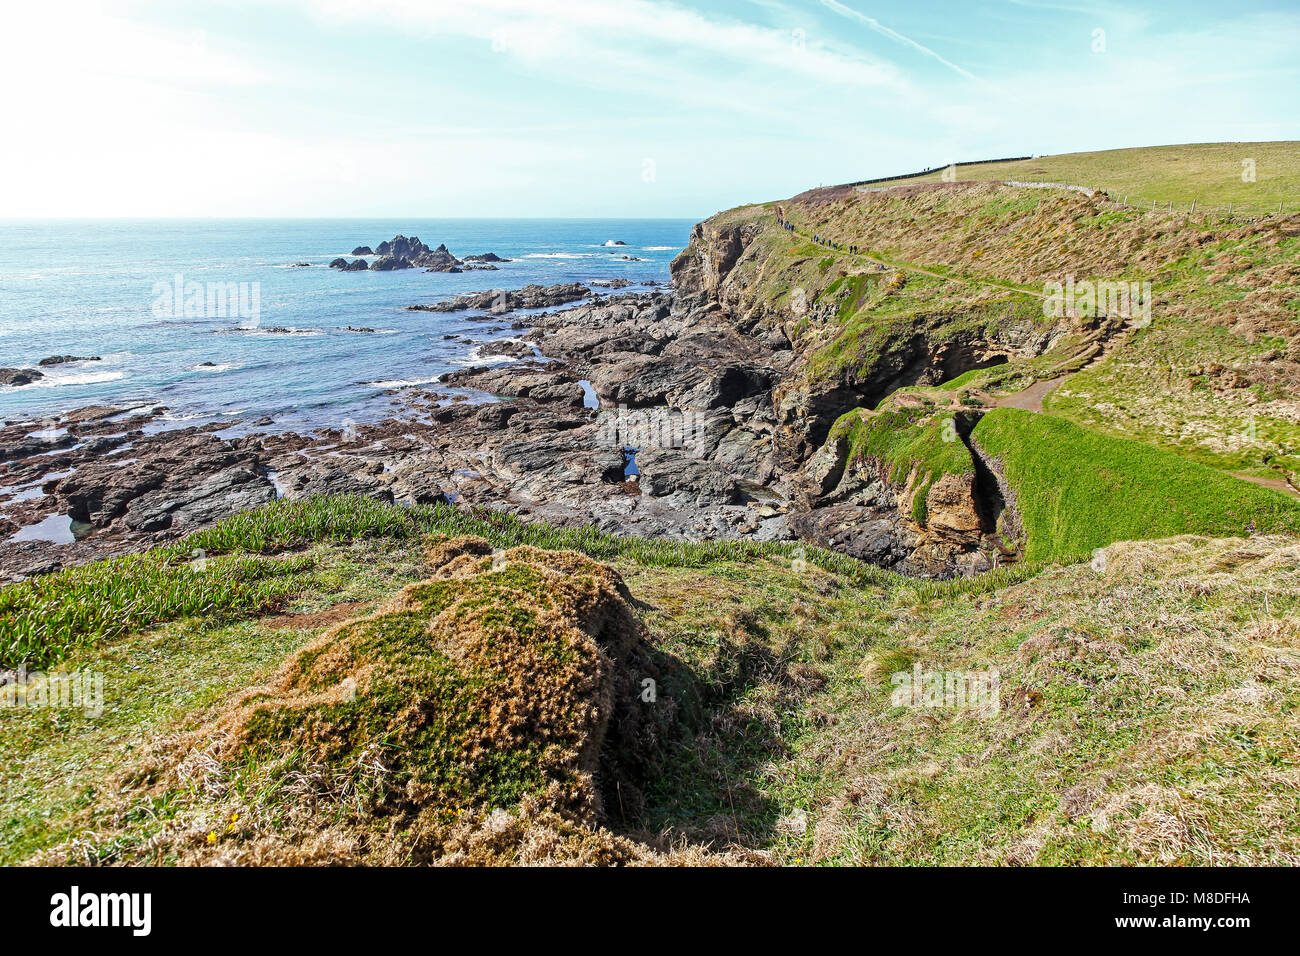 The South West Coast Path near to Pistil Meadow on the Lizard Peninsula, Cornwall, South West England, UK Stock Photo